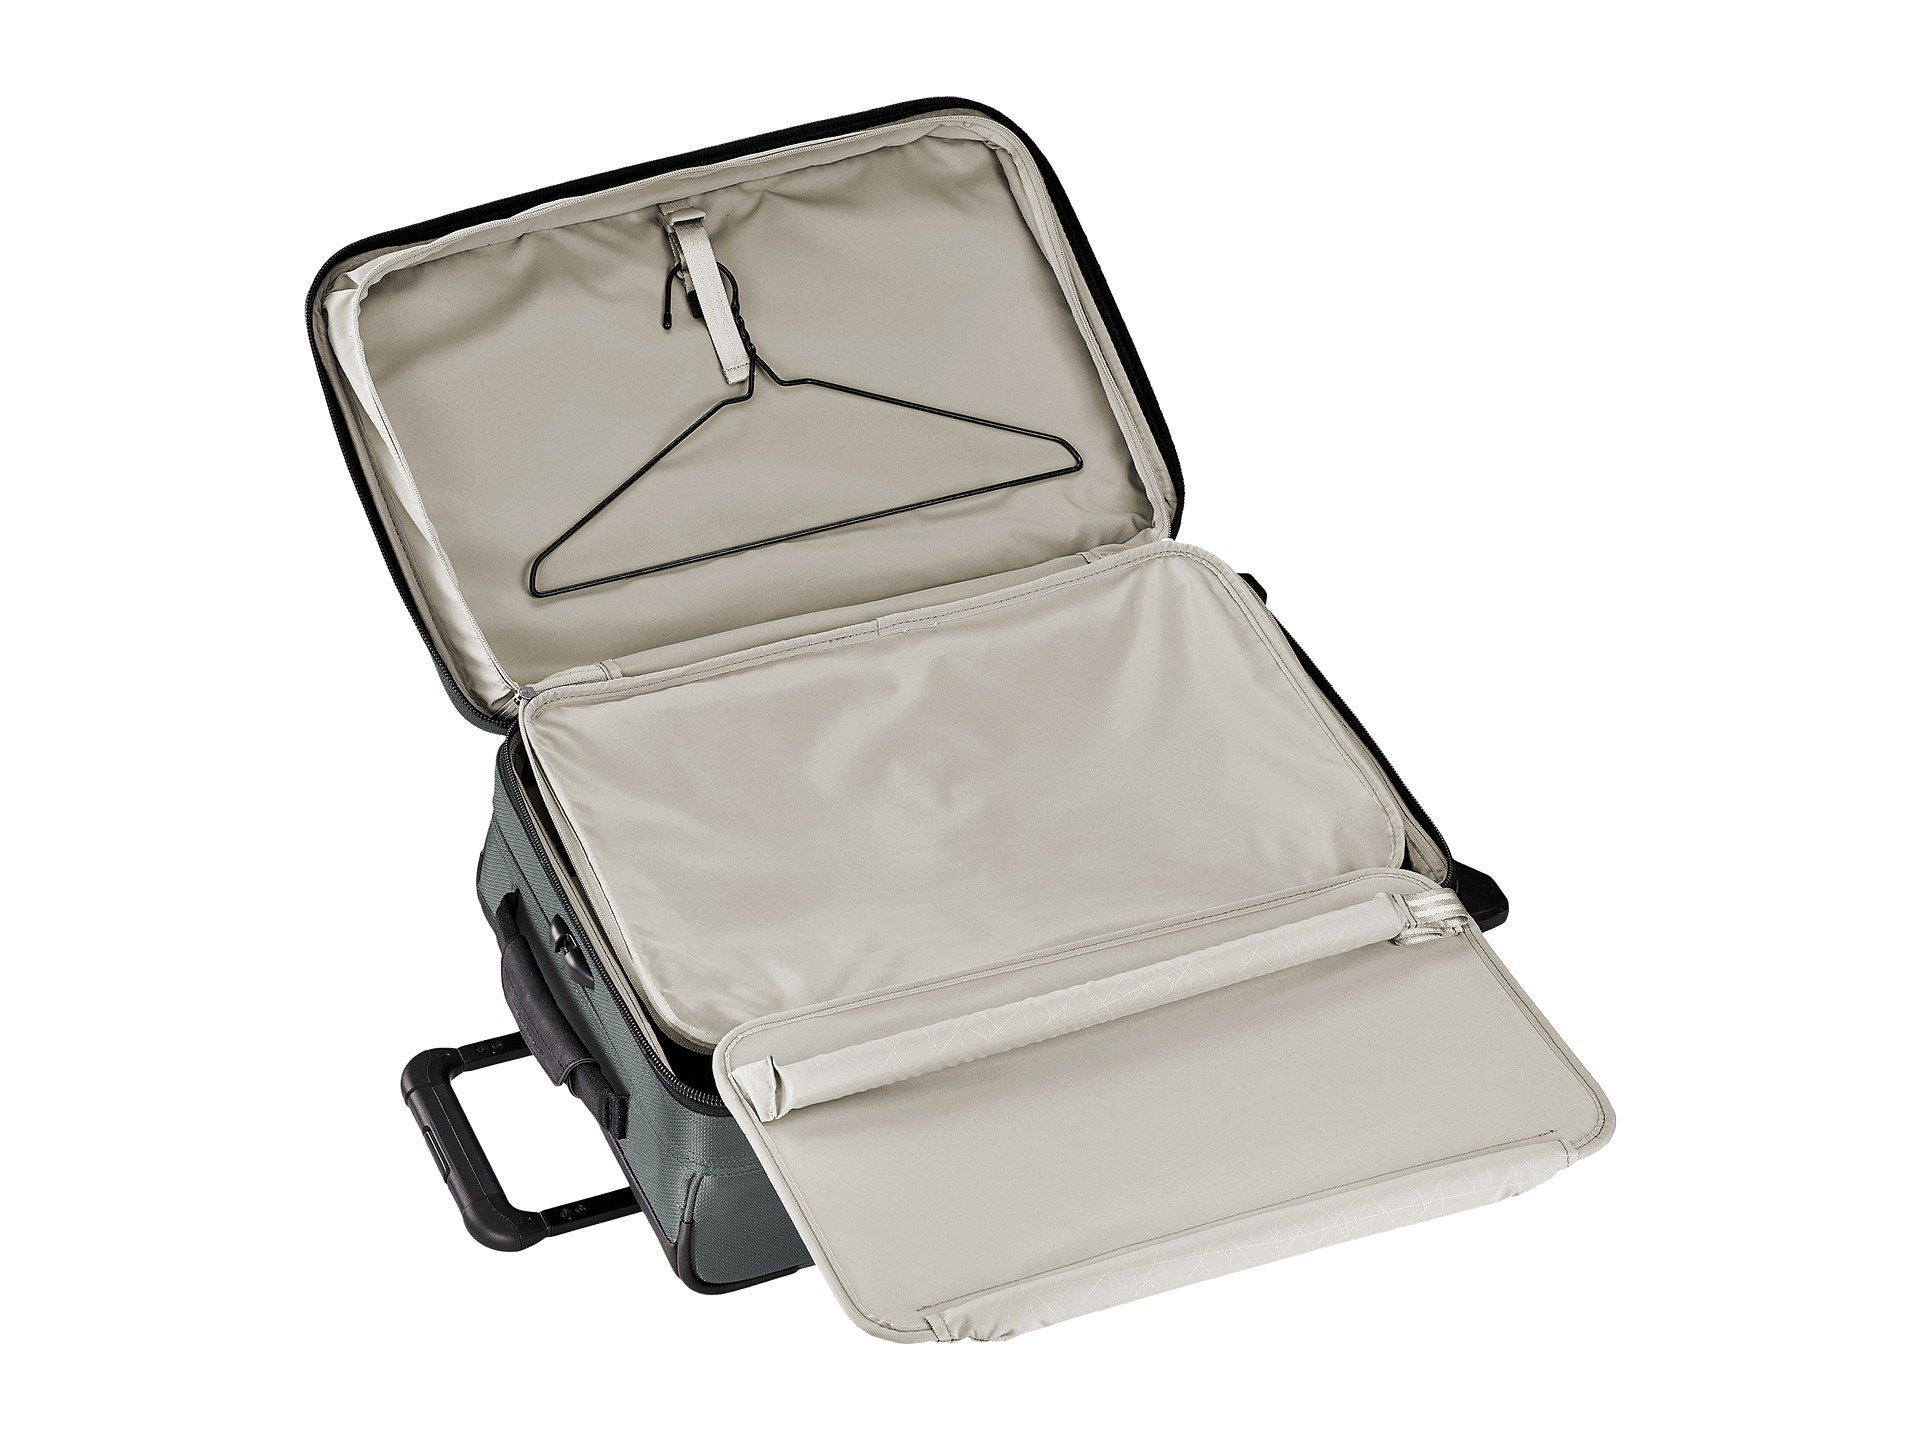 Expandable Vx Briggs Tall Slate Carry amp; Transcend Upright Grey on Riley qggwSOx0